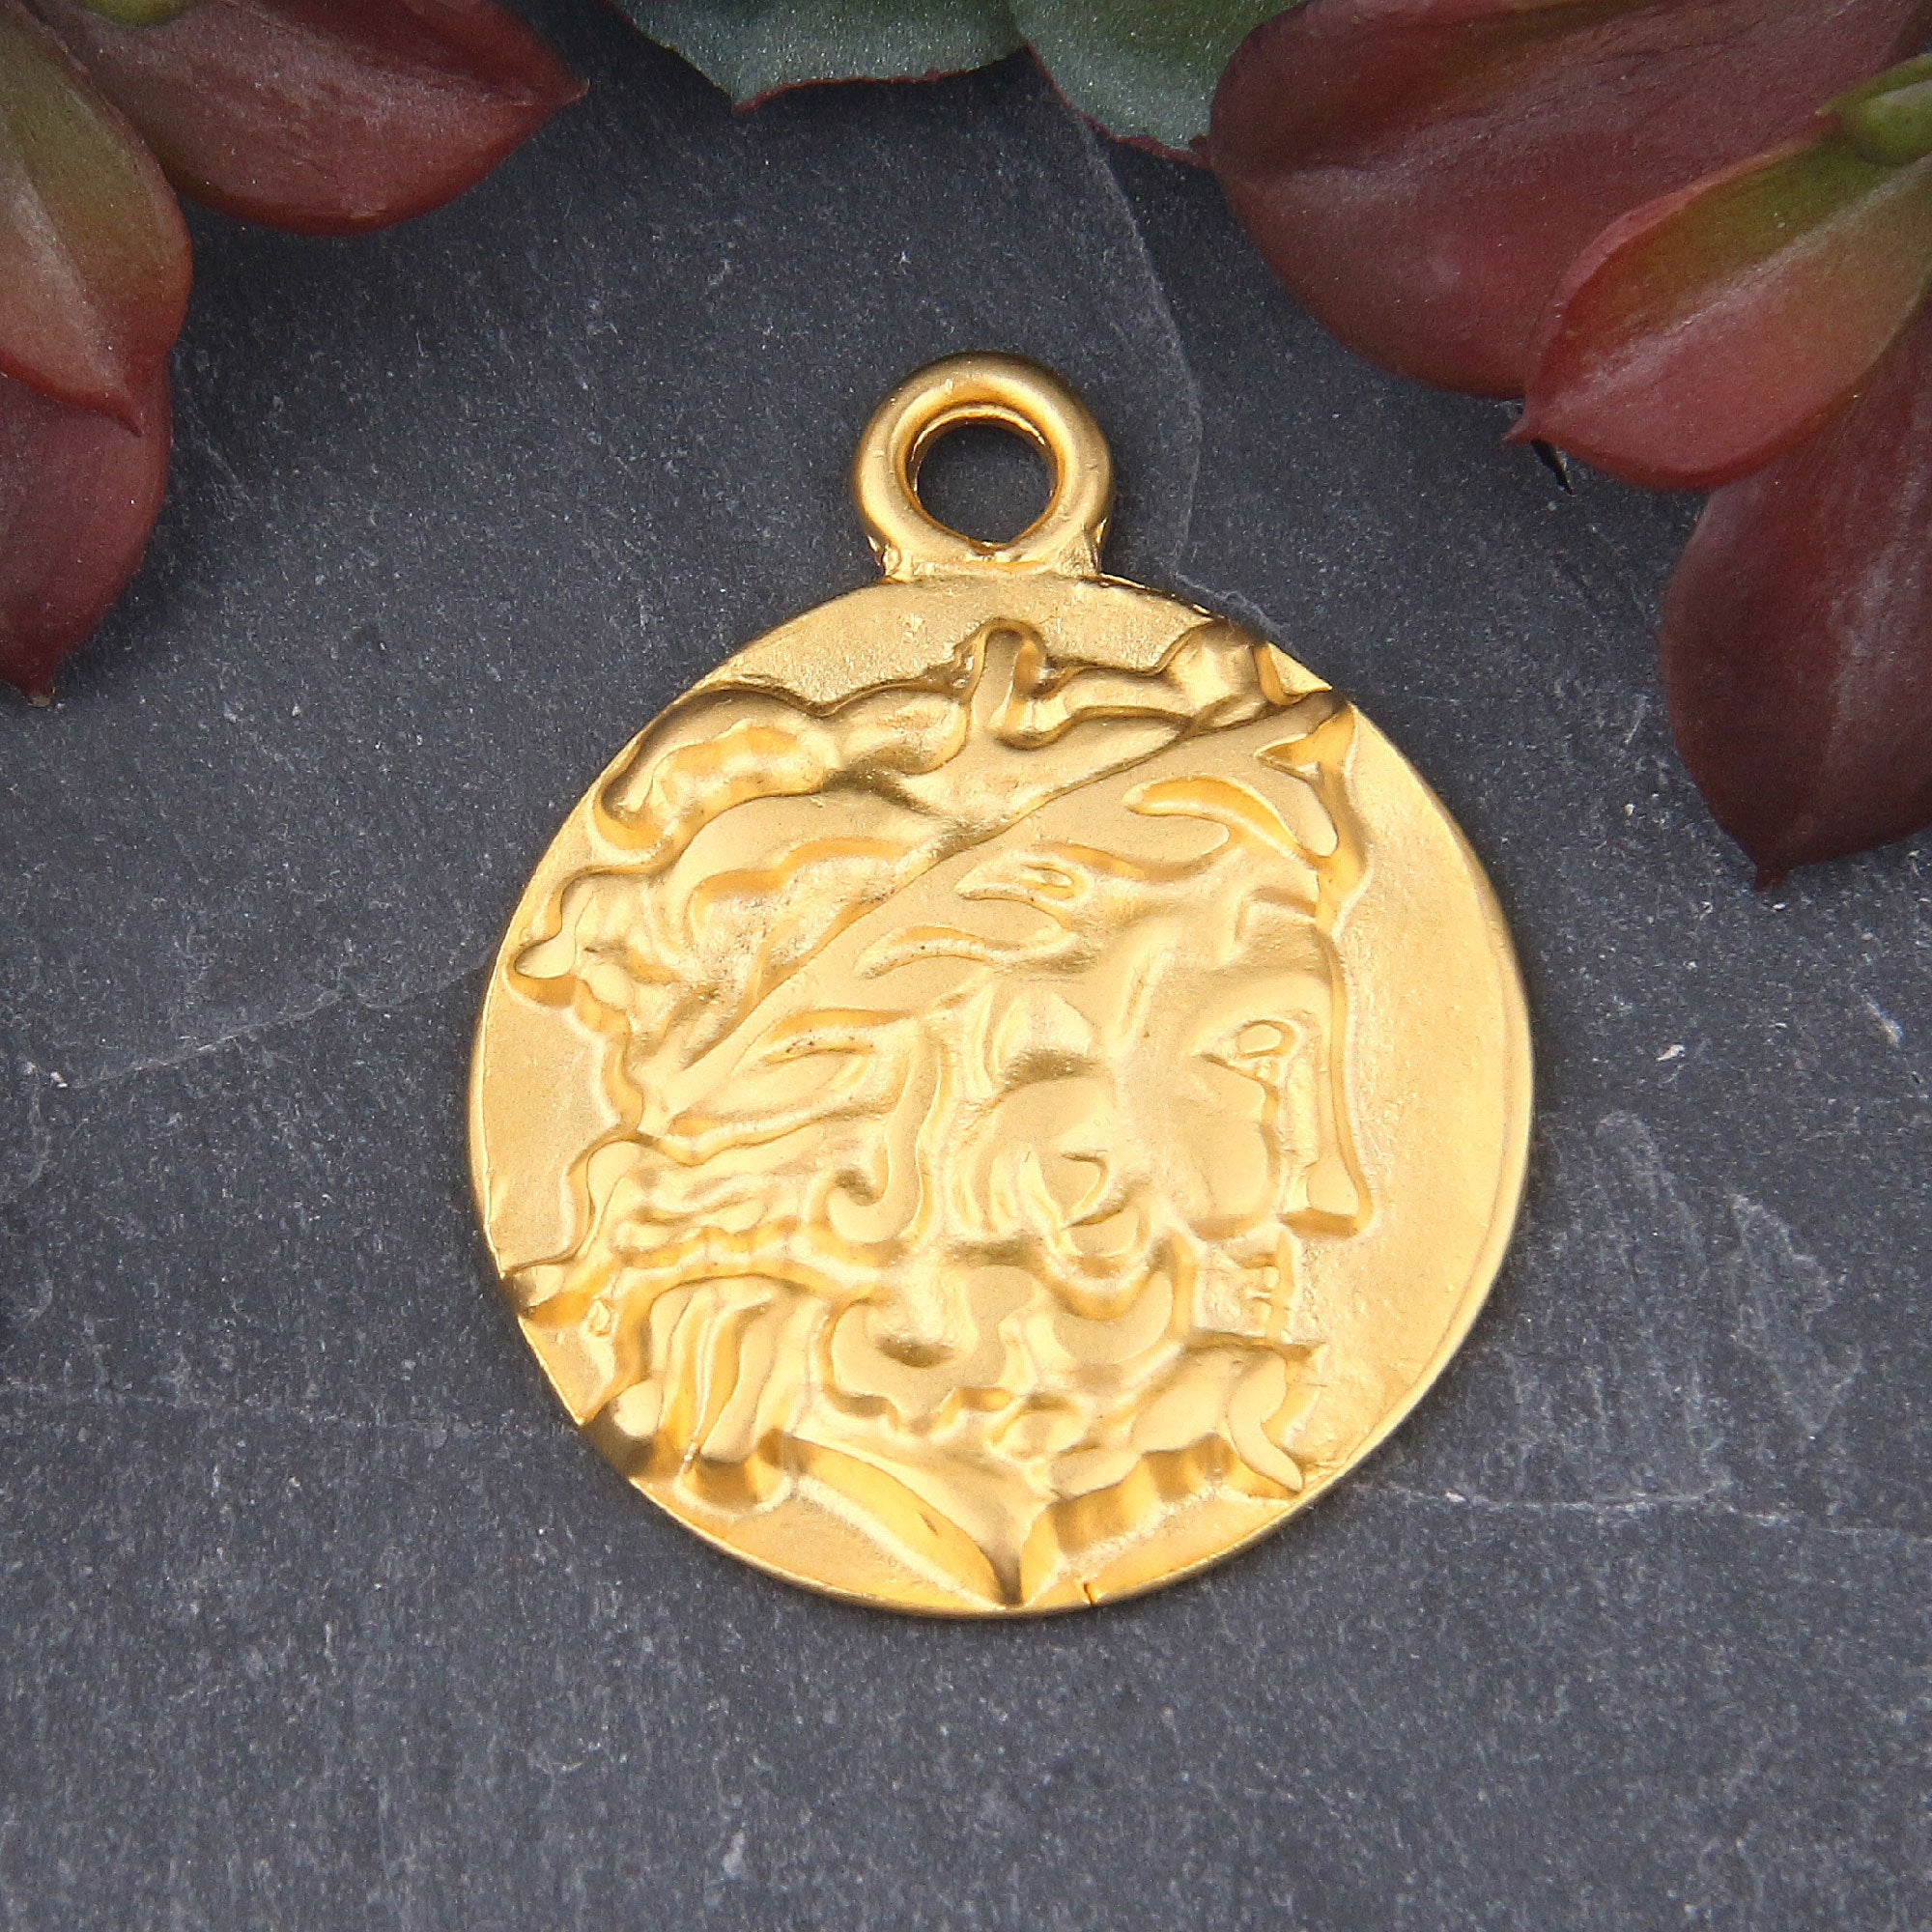 Replica Ancient Greek Warrior/King Coin Pendant, Greek Medallion, Old Greek Pendant,  Roman Coin Pendant, 1 piece  // GP-656